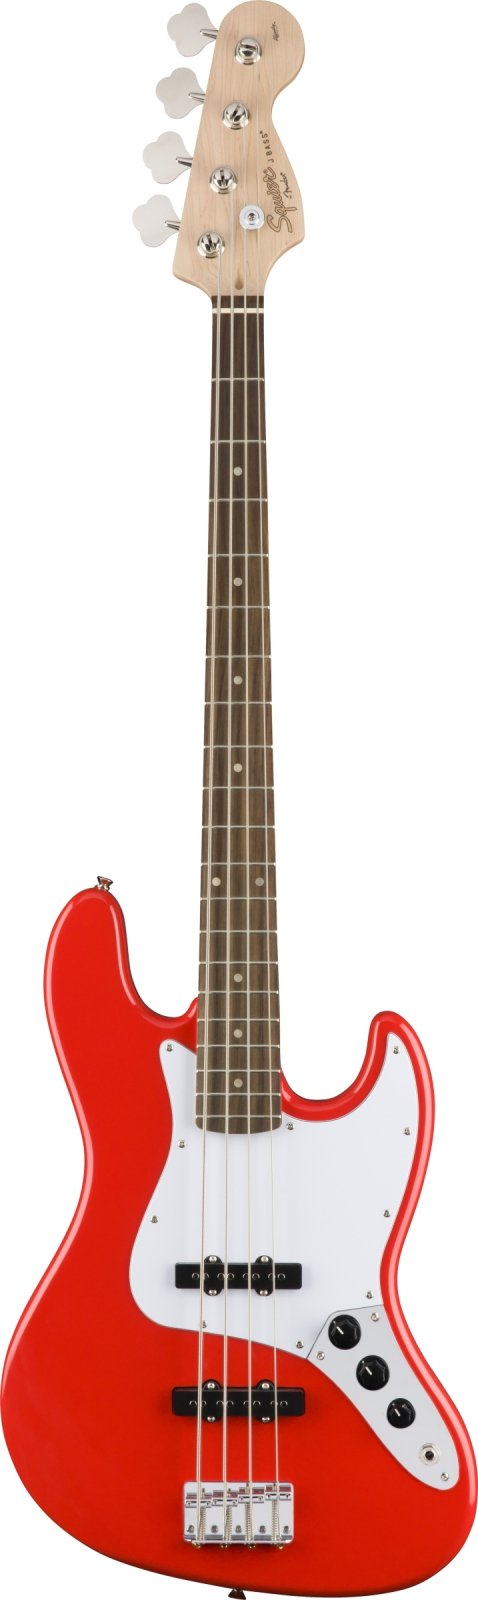 Squire by Fender Jazz Bass